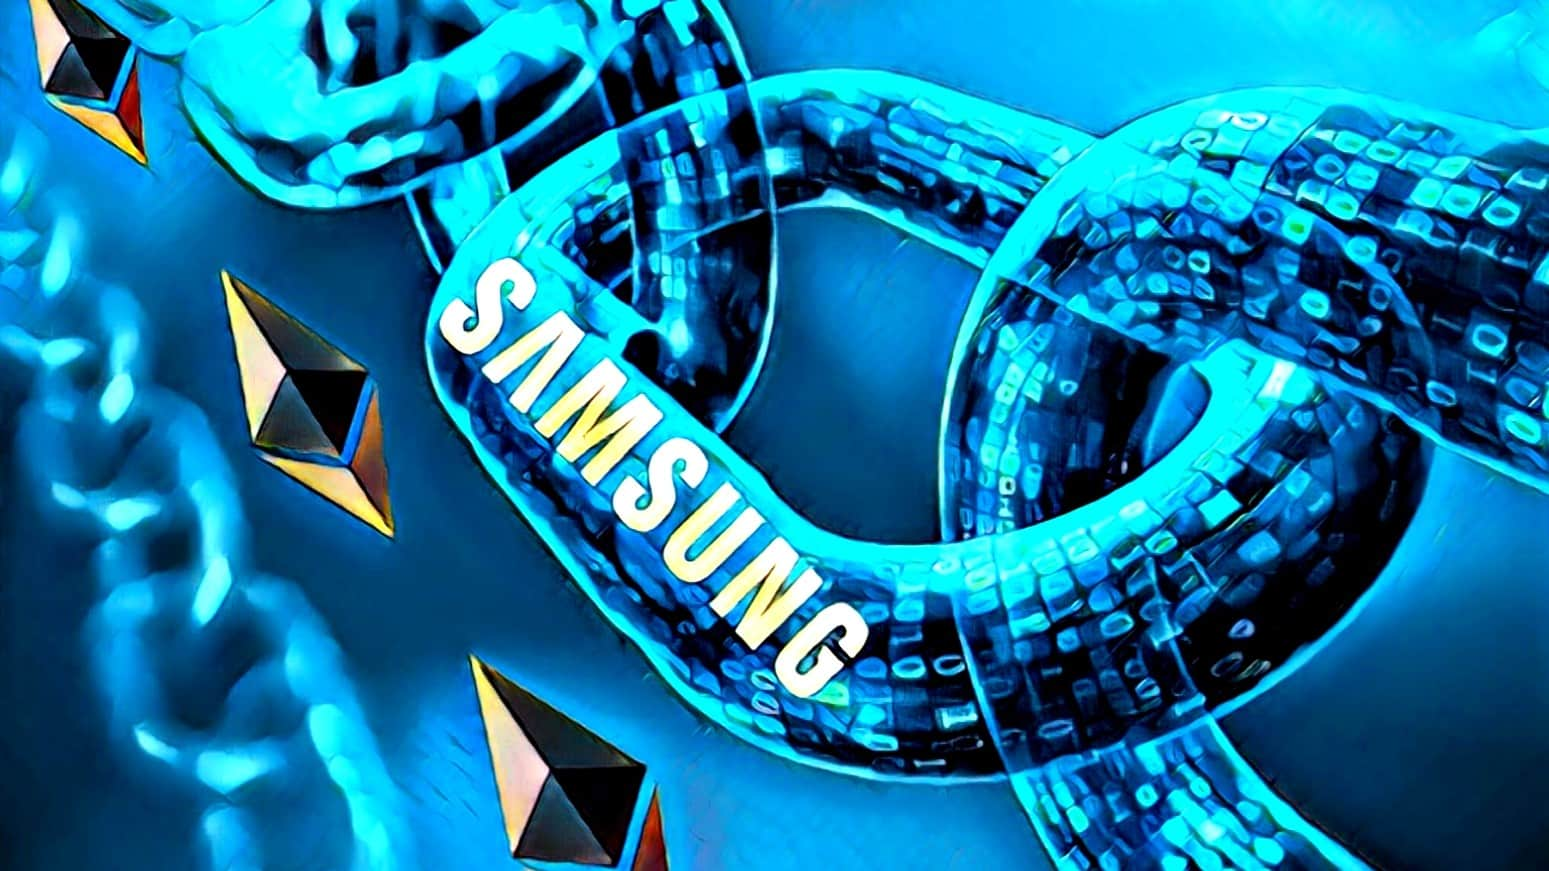 Samsung's Blockchain could Disrupt Crypto Mining